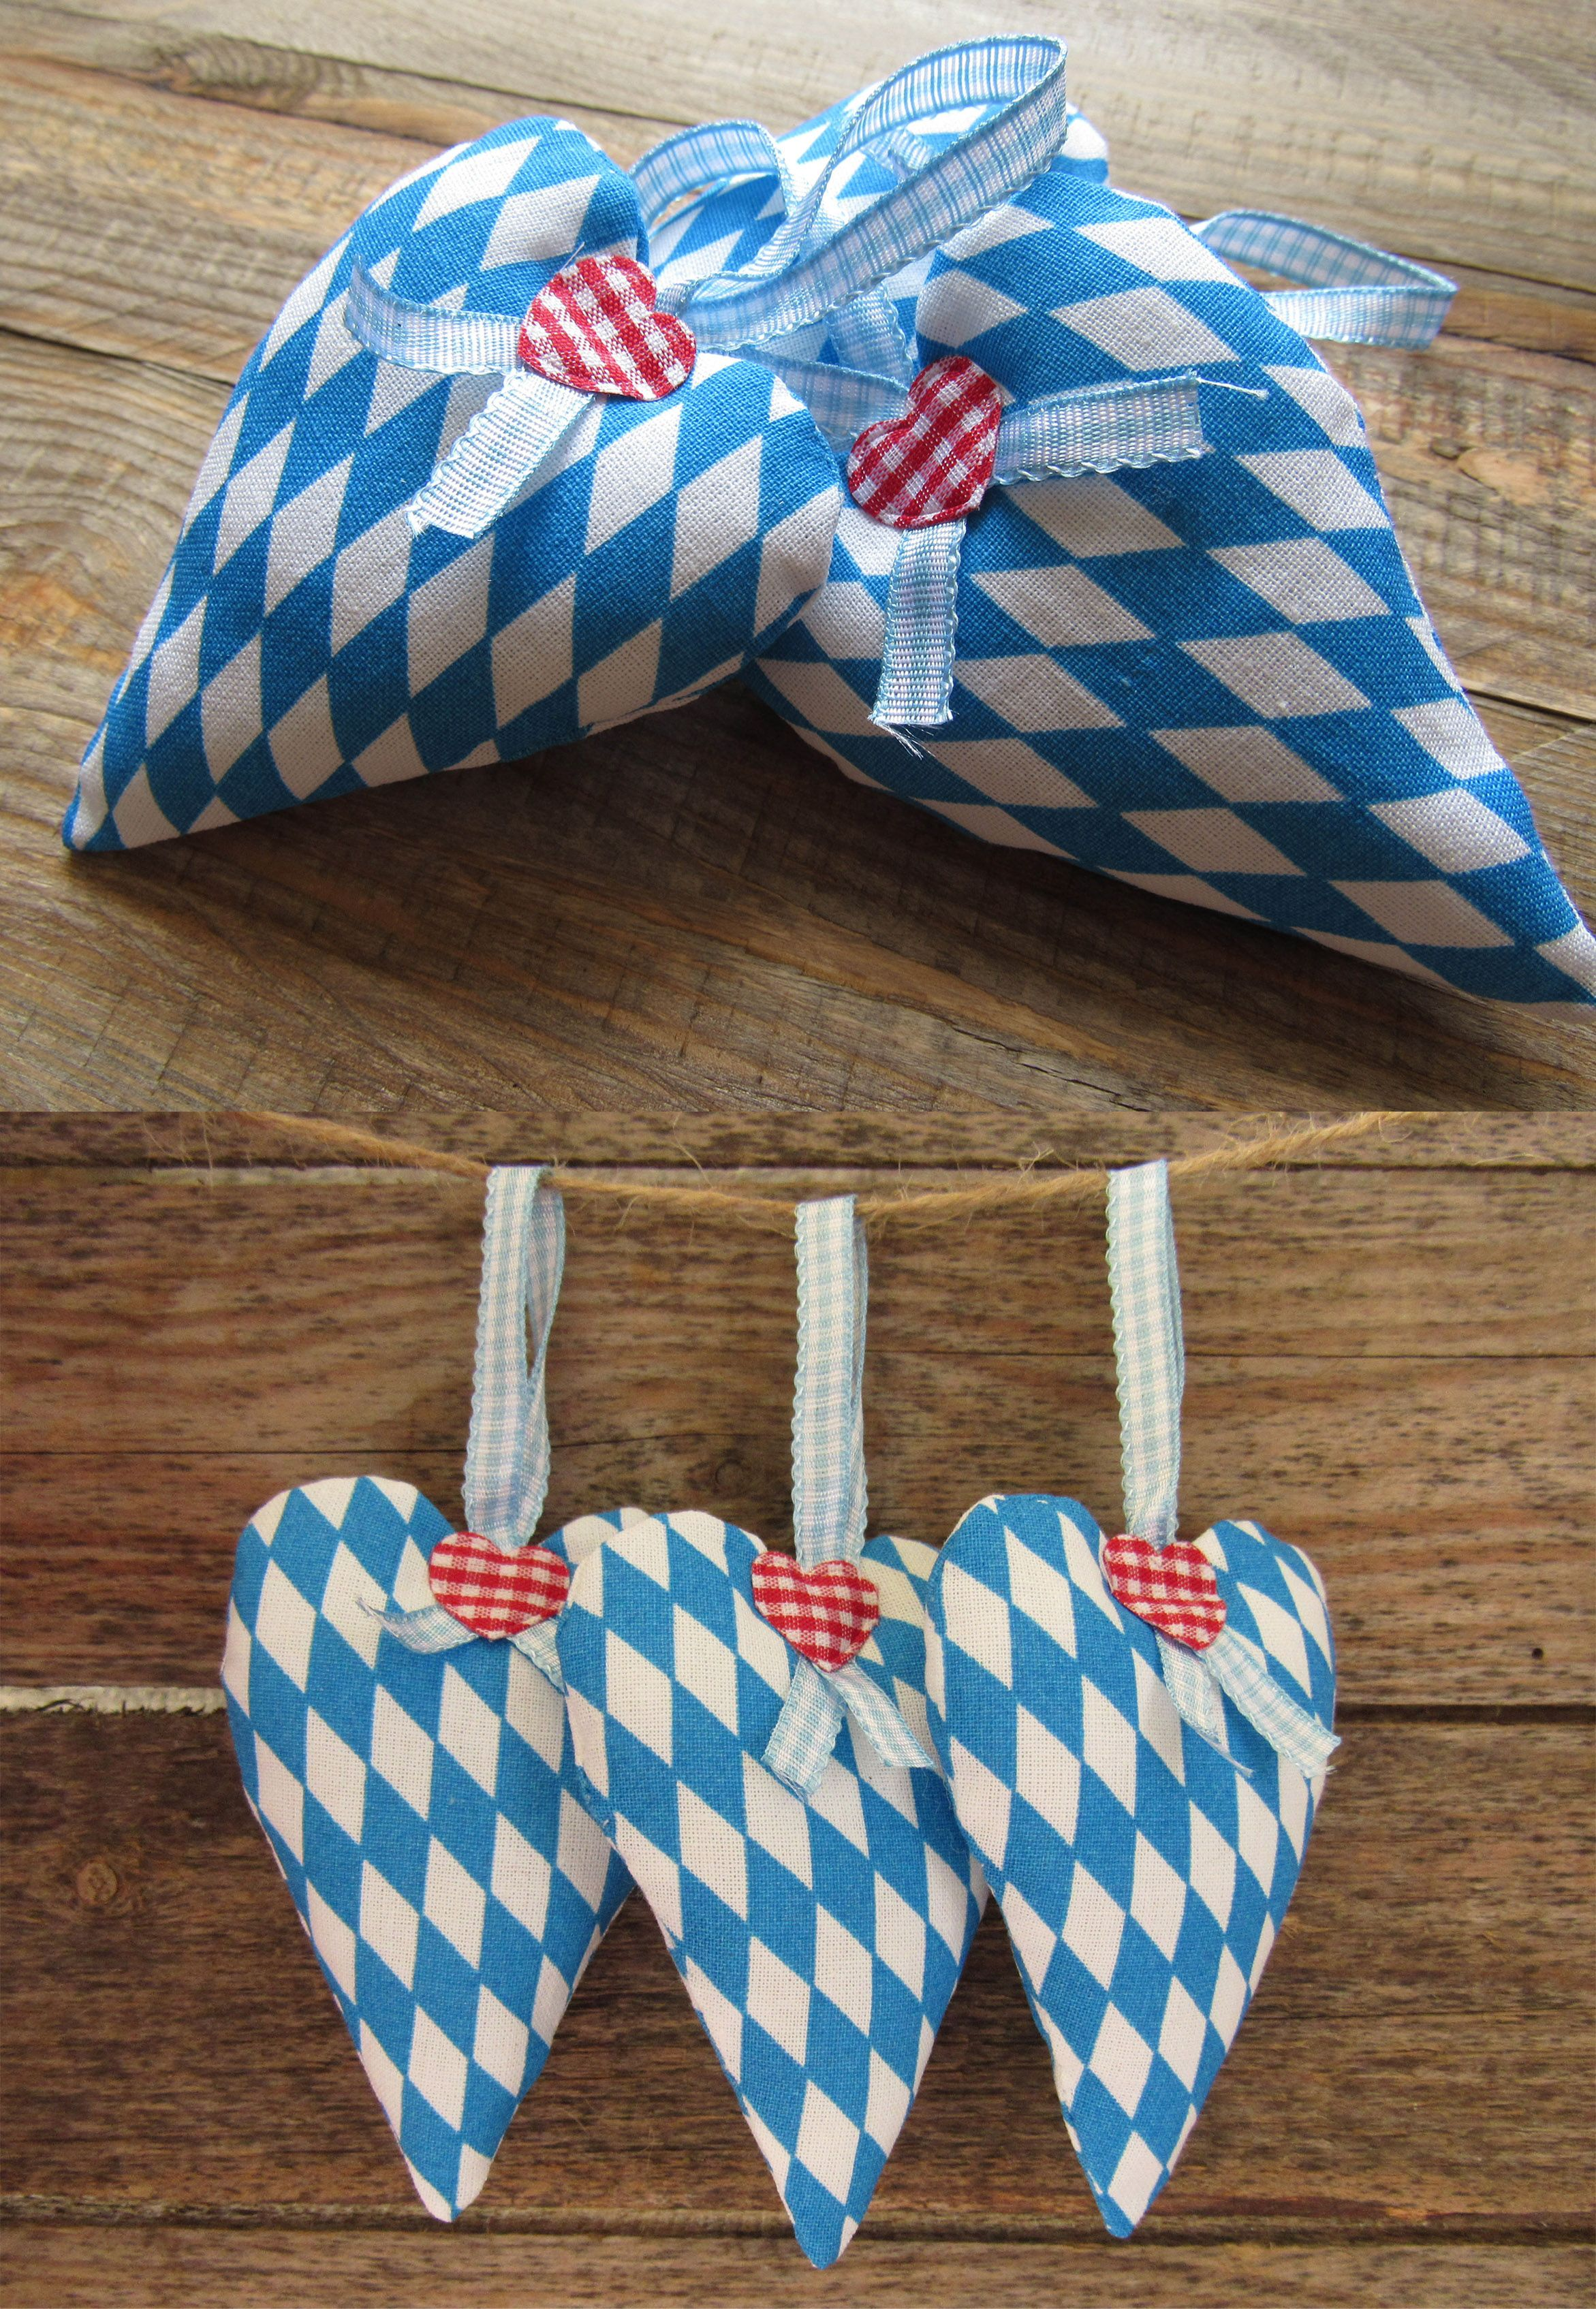 Oktoberfest Decoration Set Of 3 Fabric Hearts Traditional Bavarian